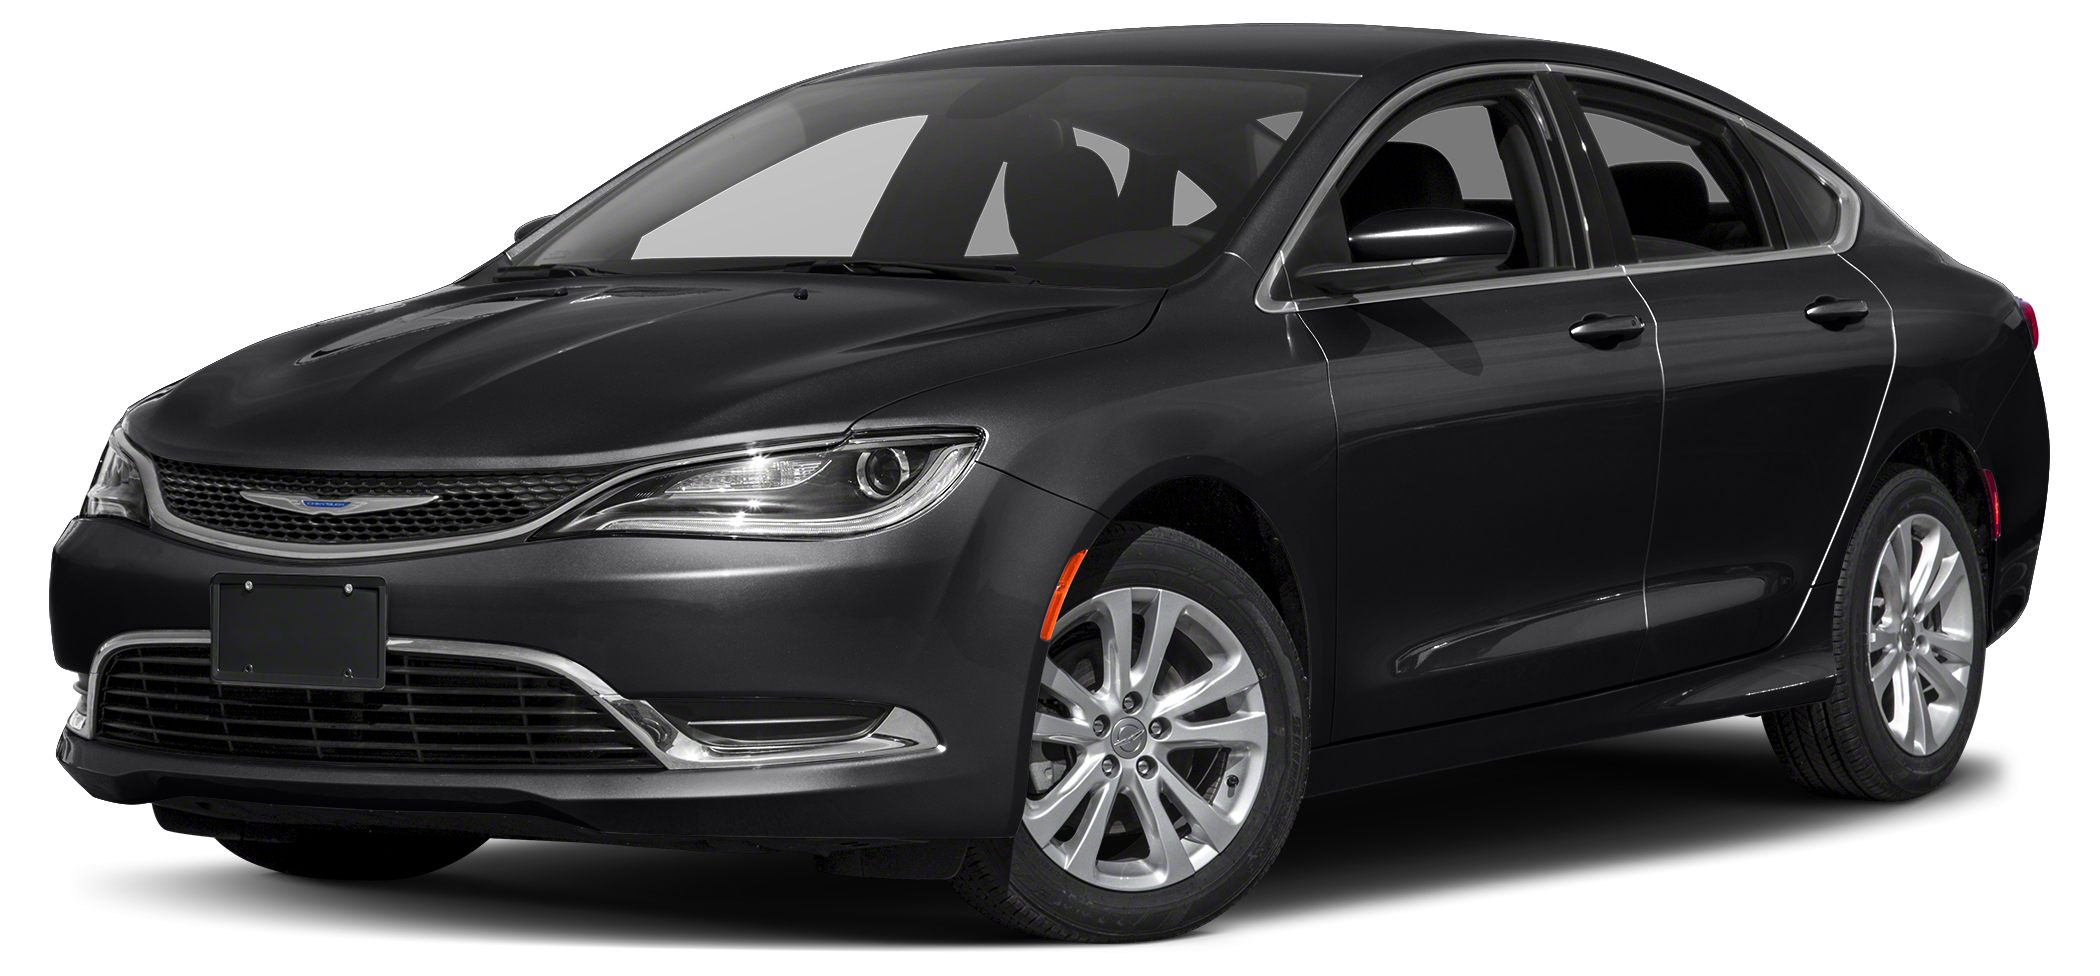 2015 Chrysler 200 Limited This 2015 Chrysler 200 Limited will sell fast Bluetooth Save money at t